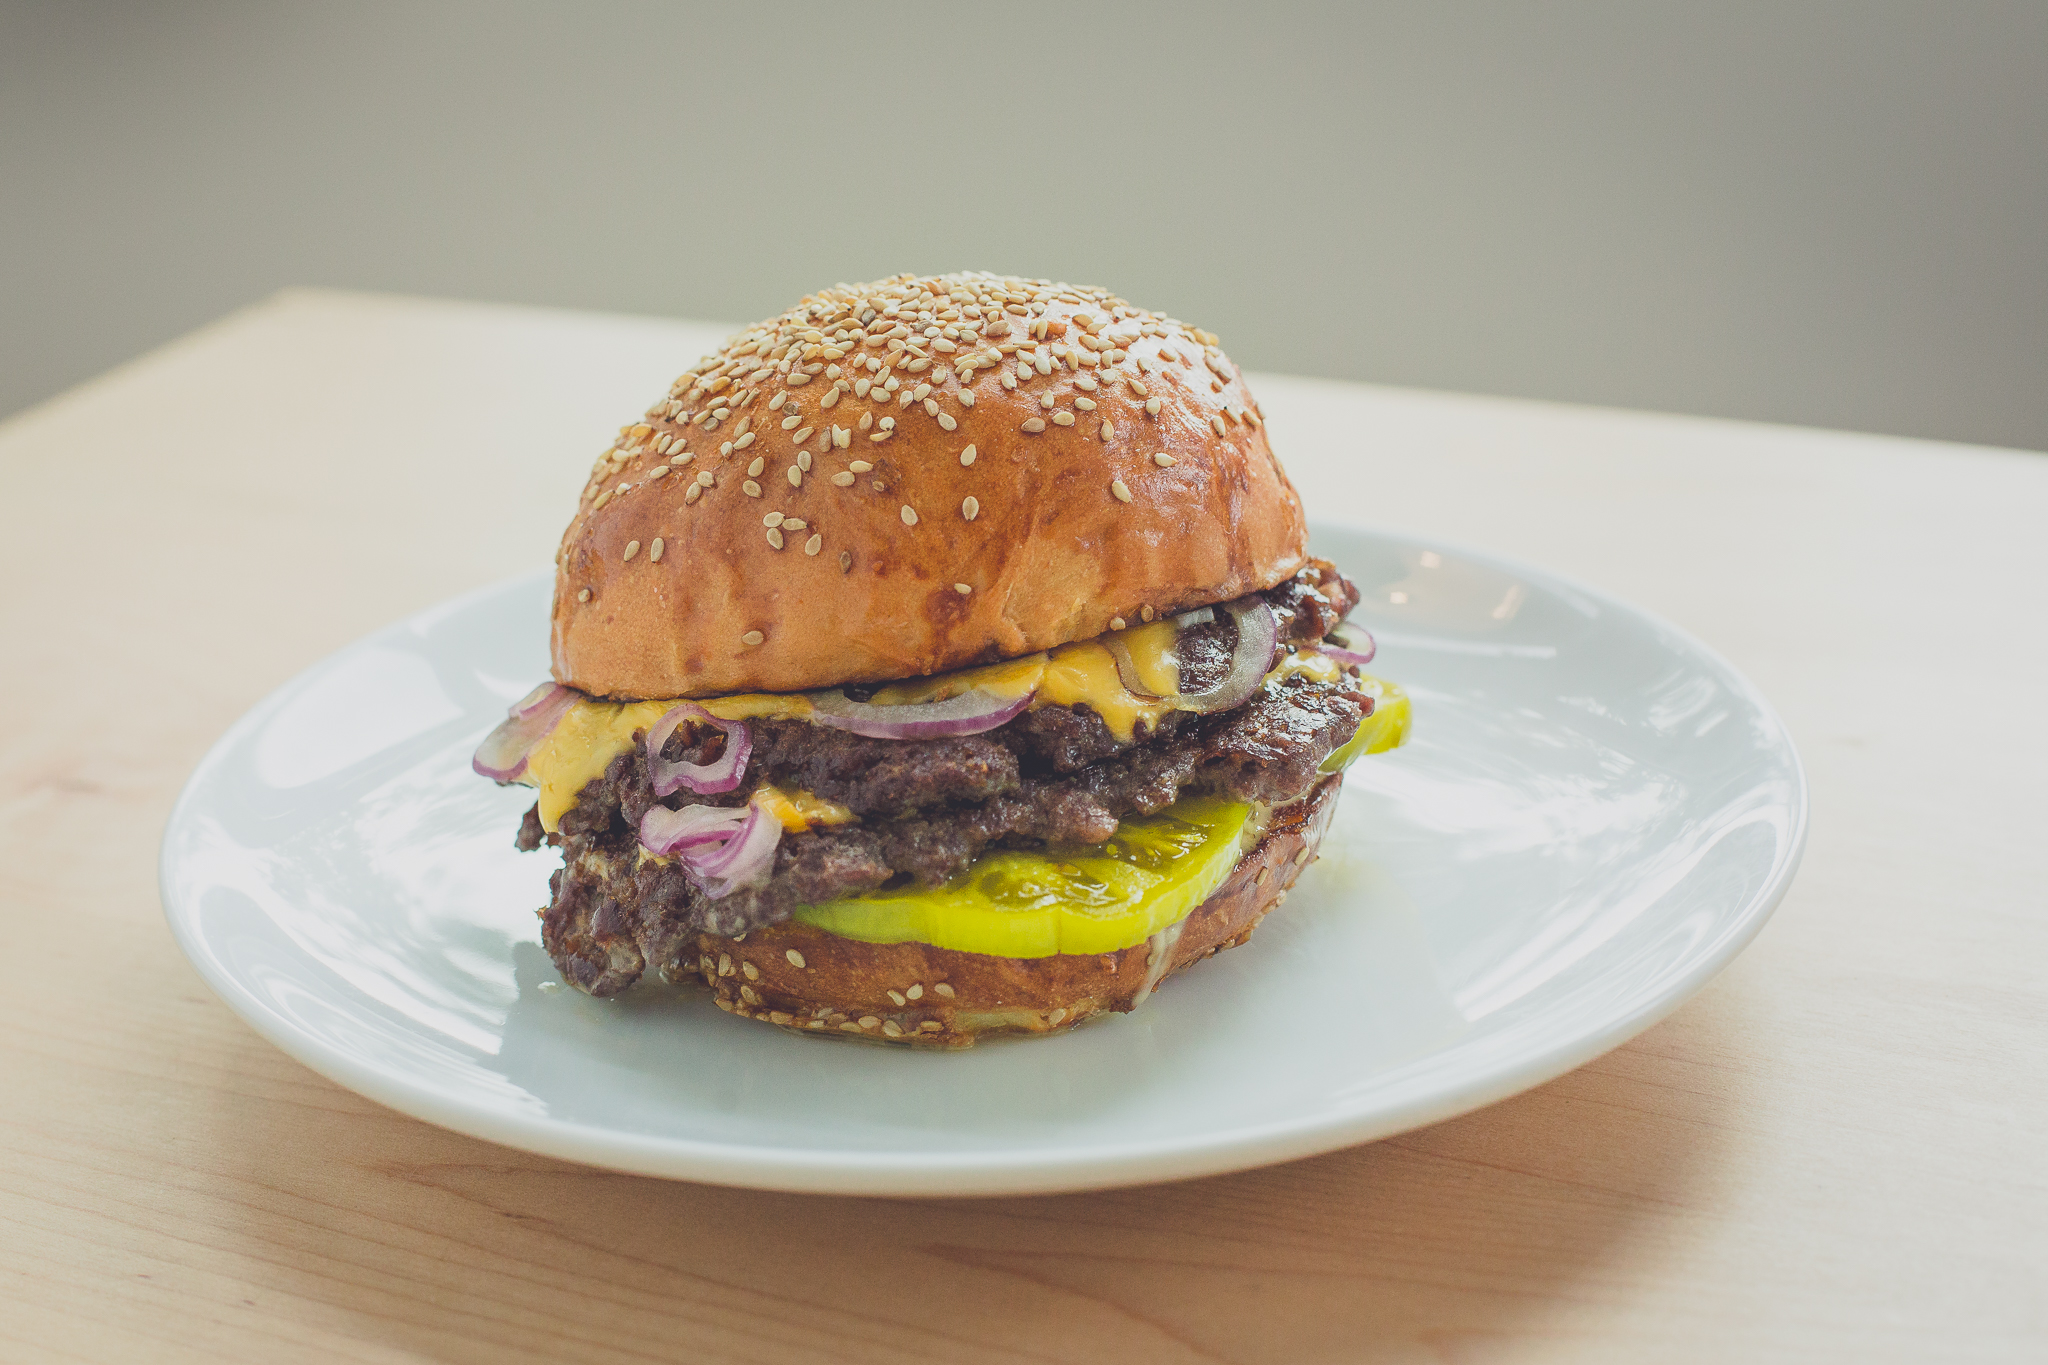 Pickled green tomatoes and free-range, grass-fed beef combine to make The Grange burger a local enterprise.